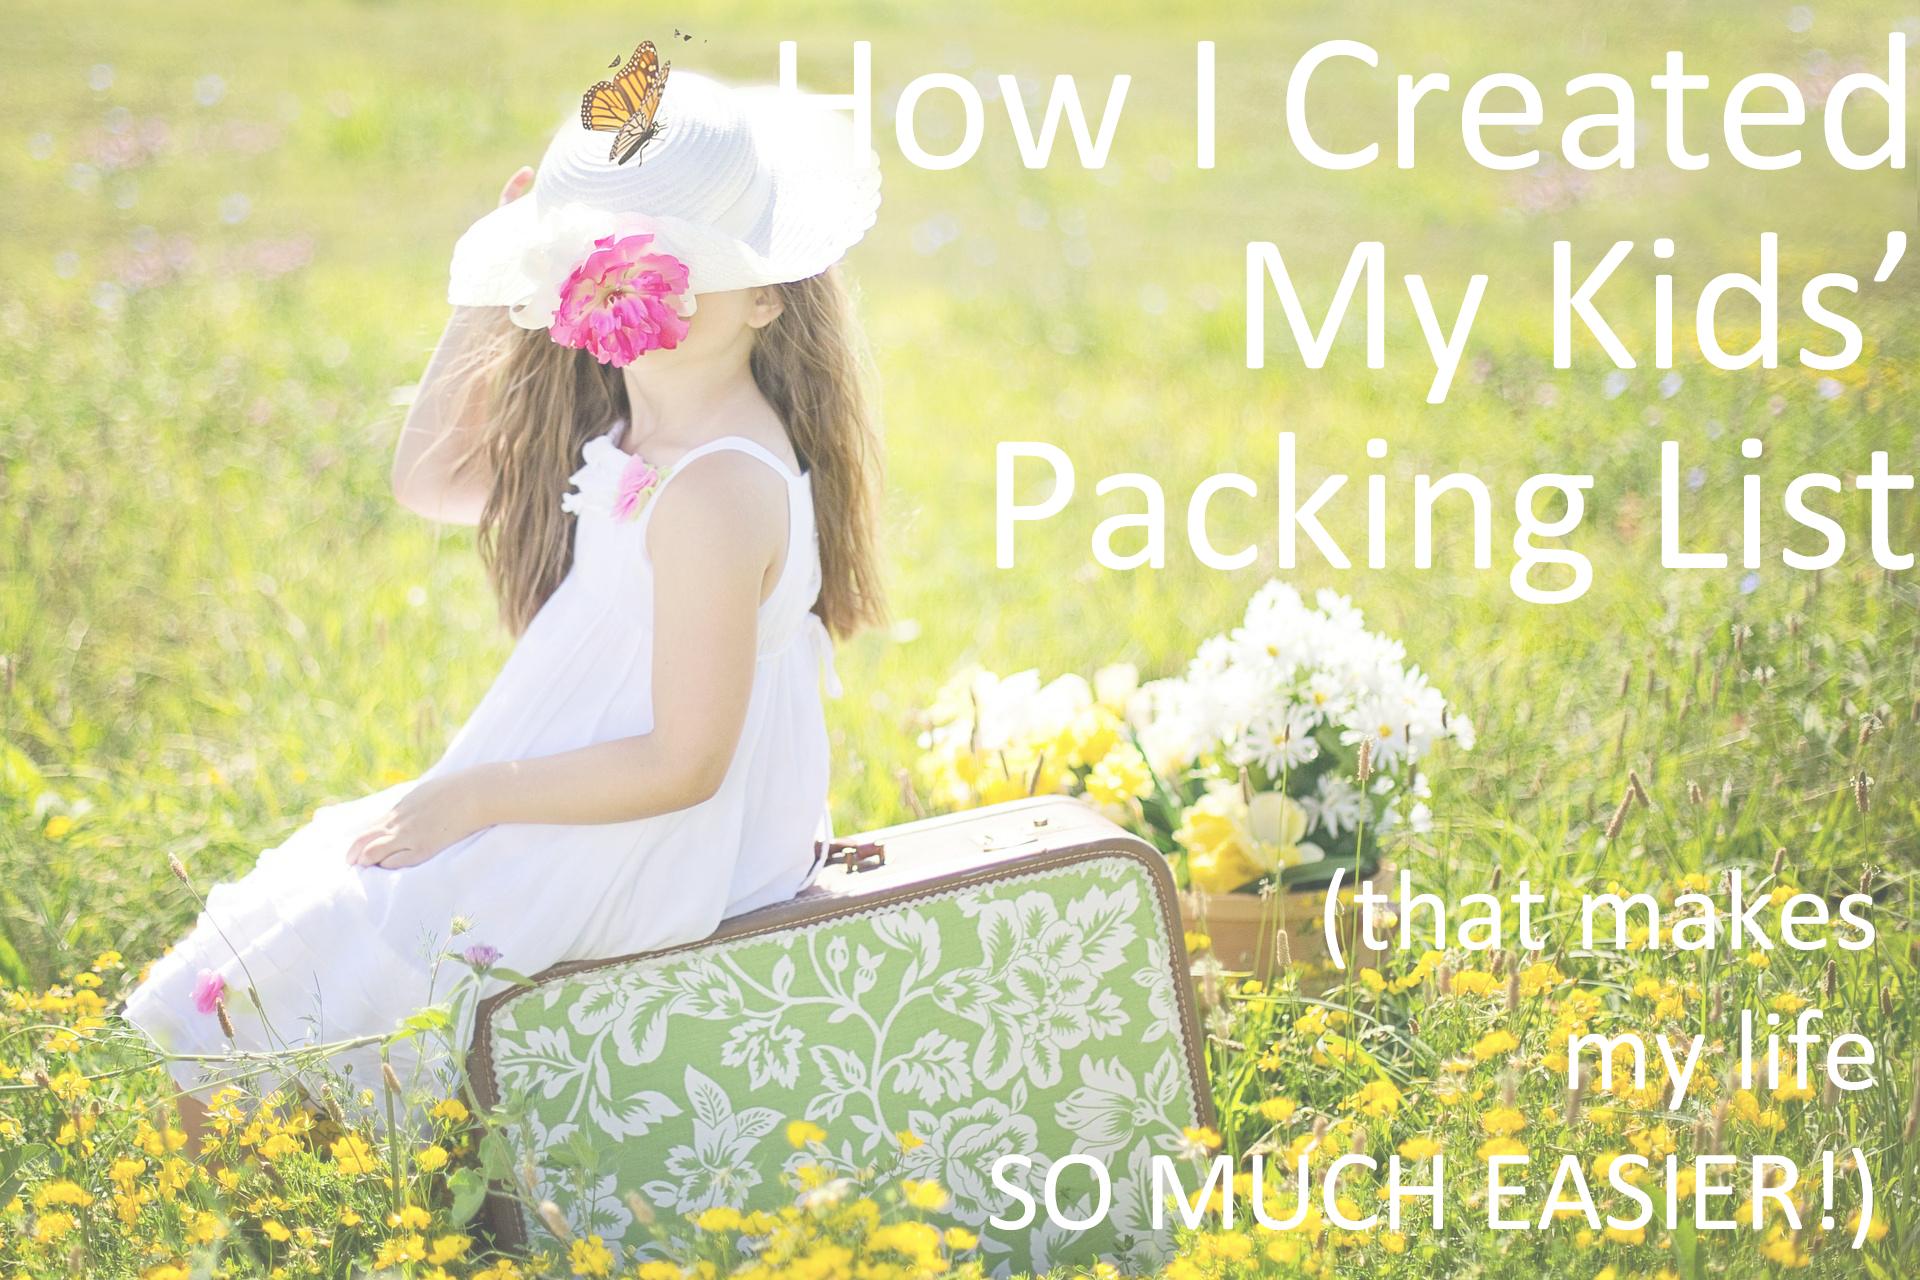 How I Created My Kids' Packing List (that makes my life so much easier)